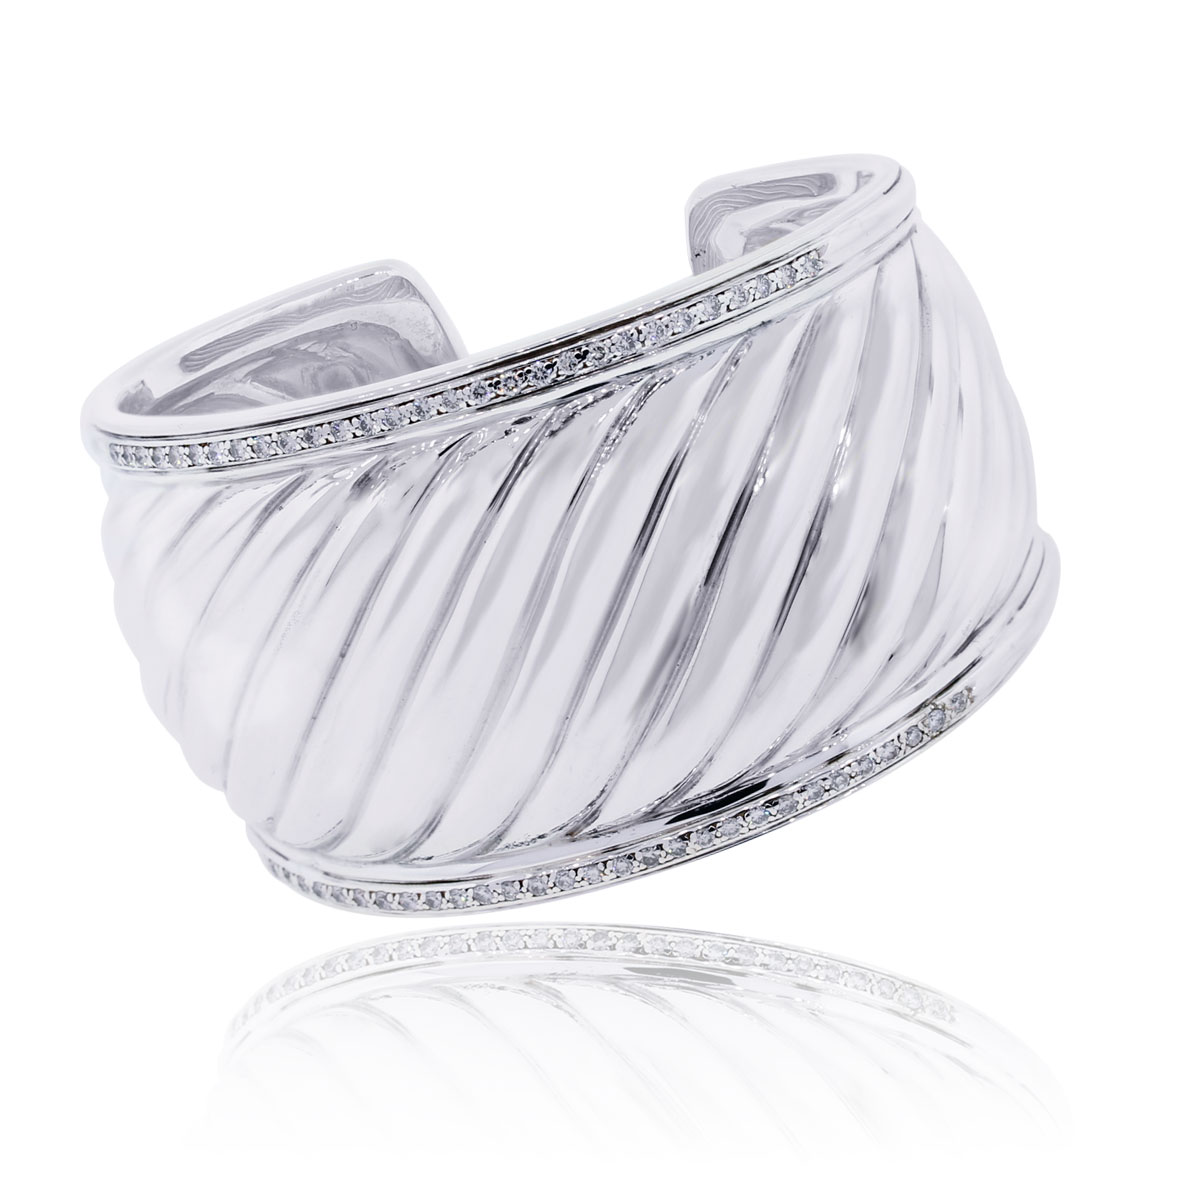 David Yurman diamond wide bangle